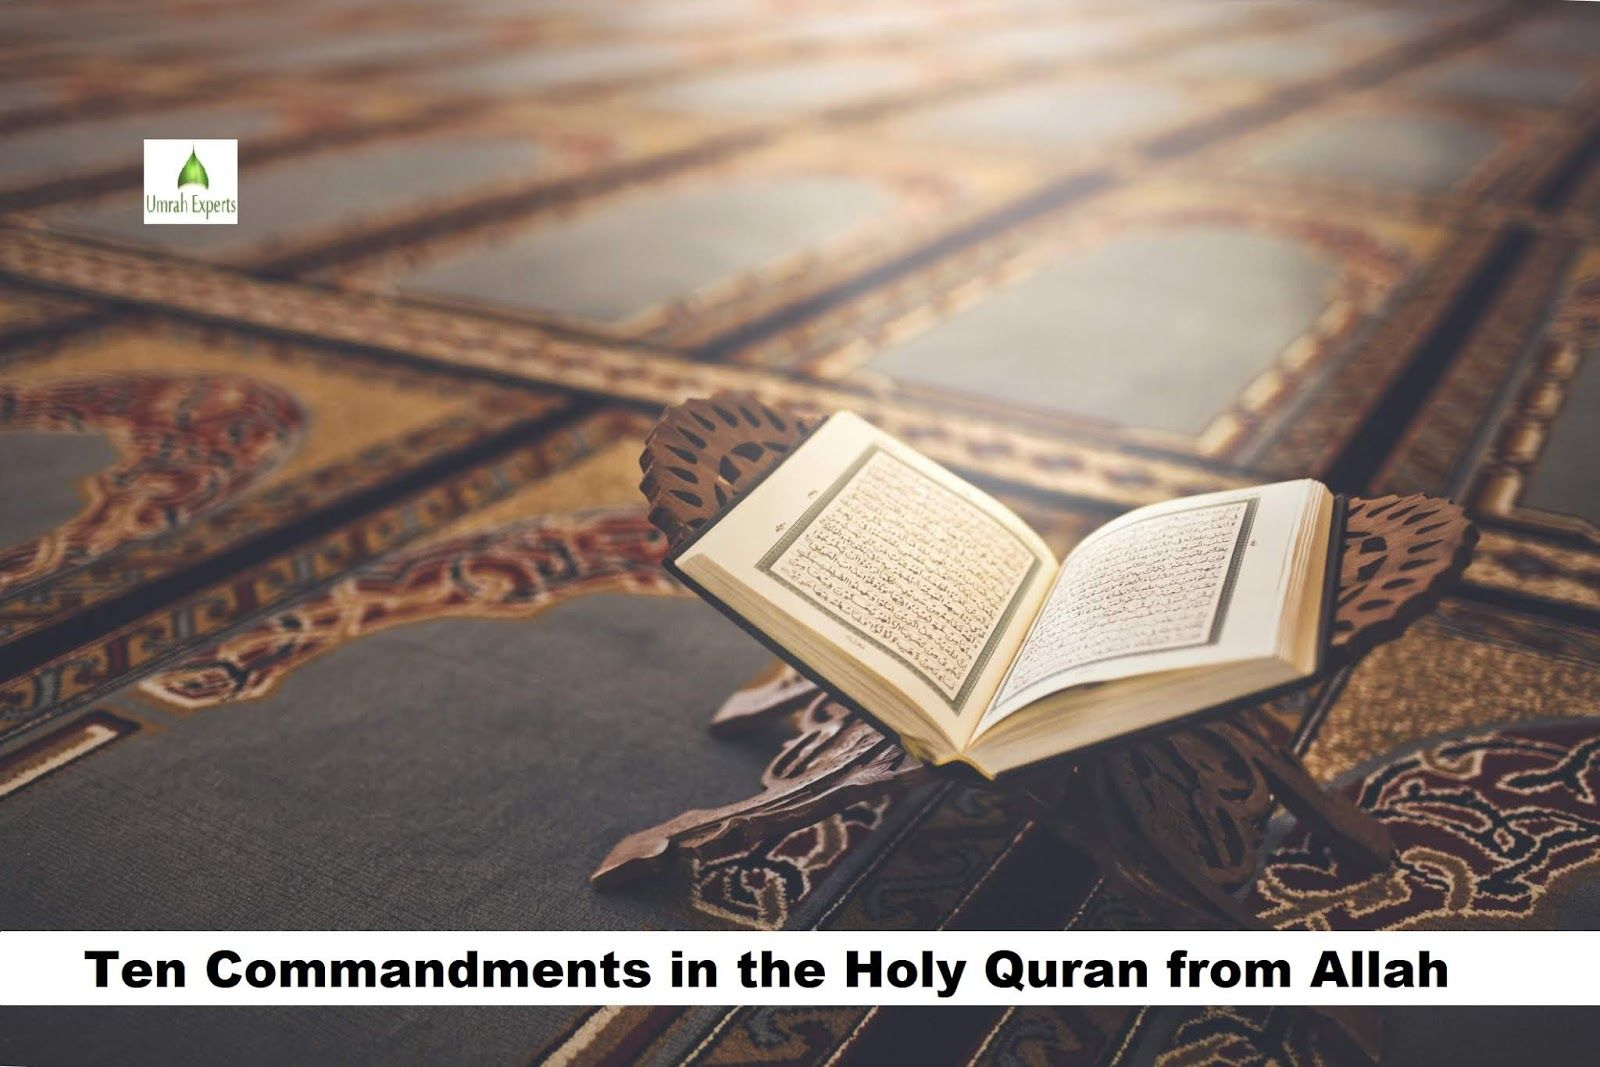 Ten Commandments in the Holy Quran from Allah